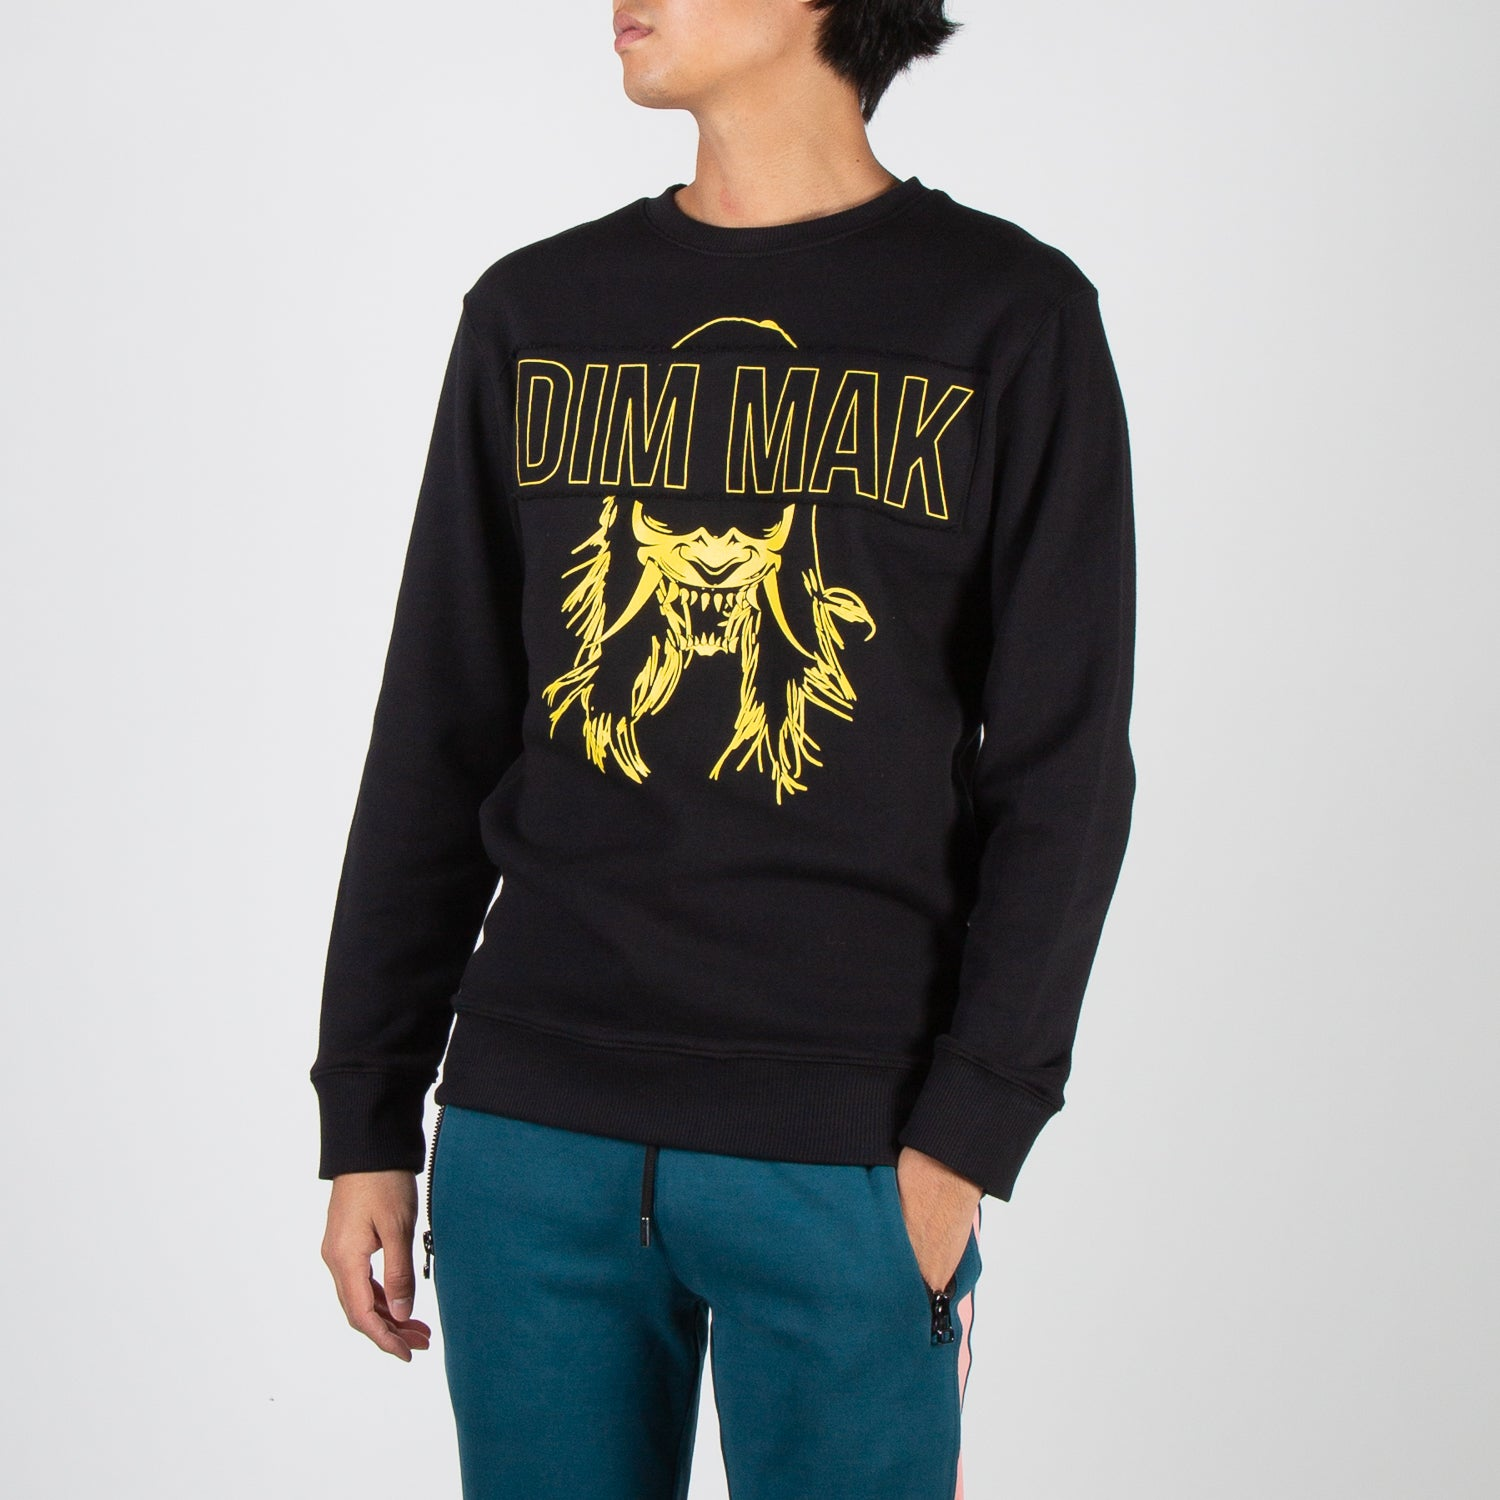 Yellow Demon Mask design on black pullover sweater by Dim Mak at Secret Location